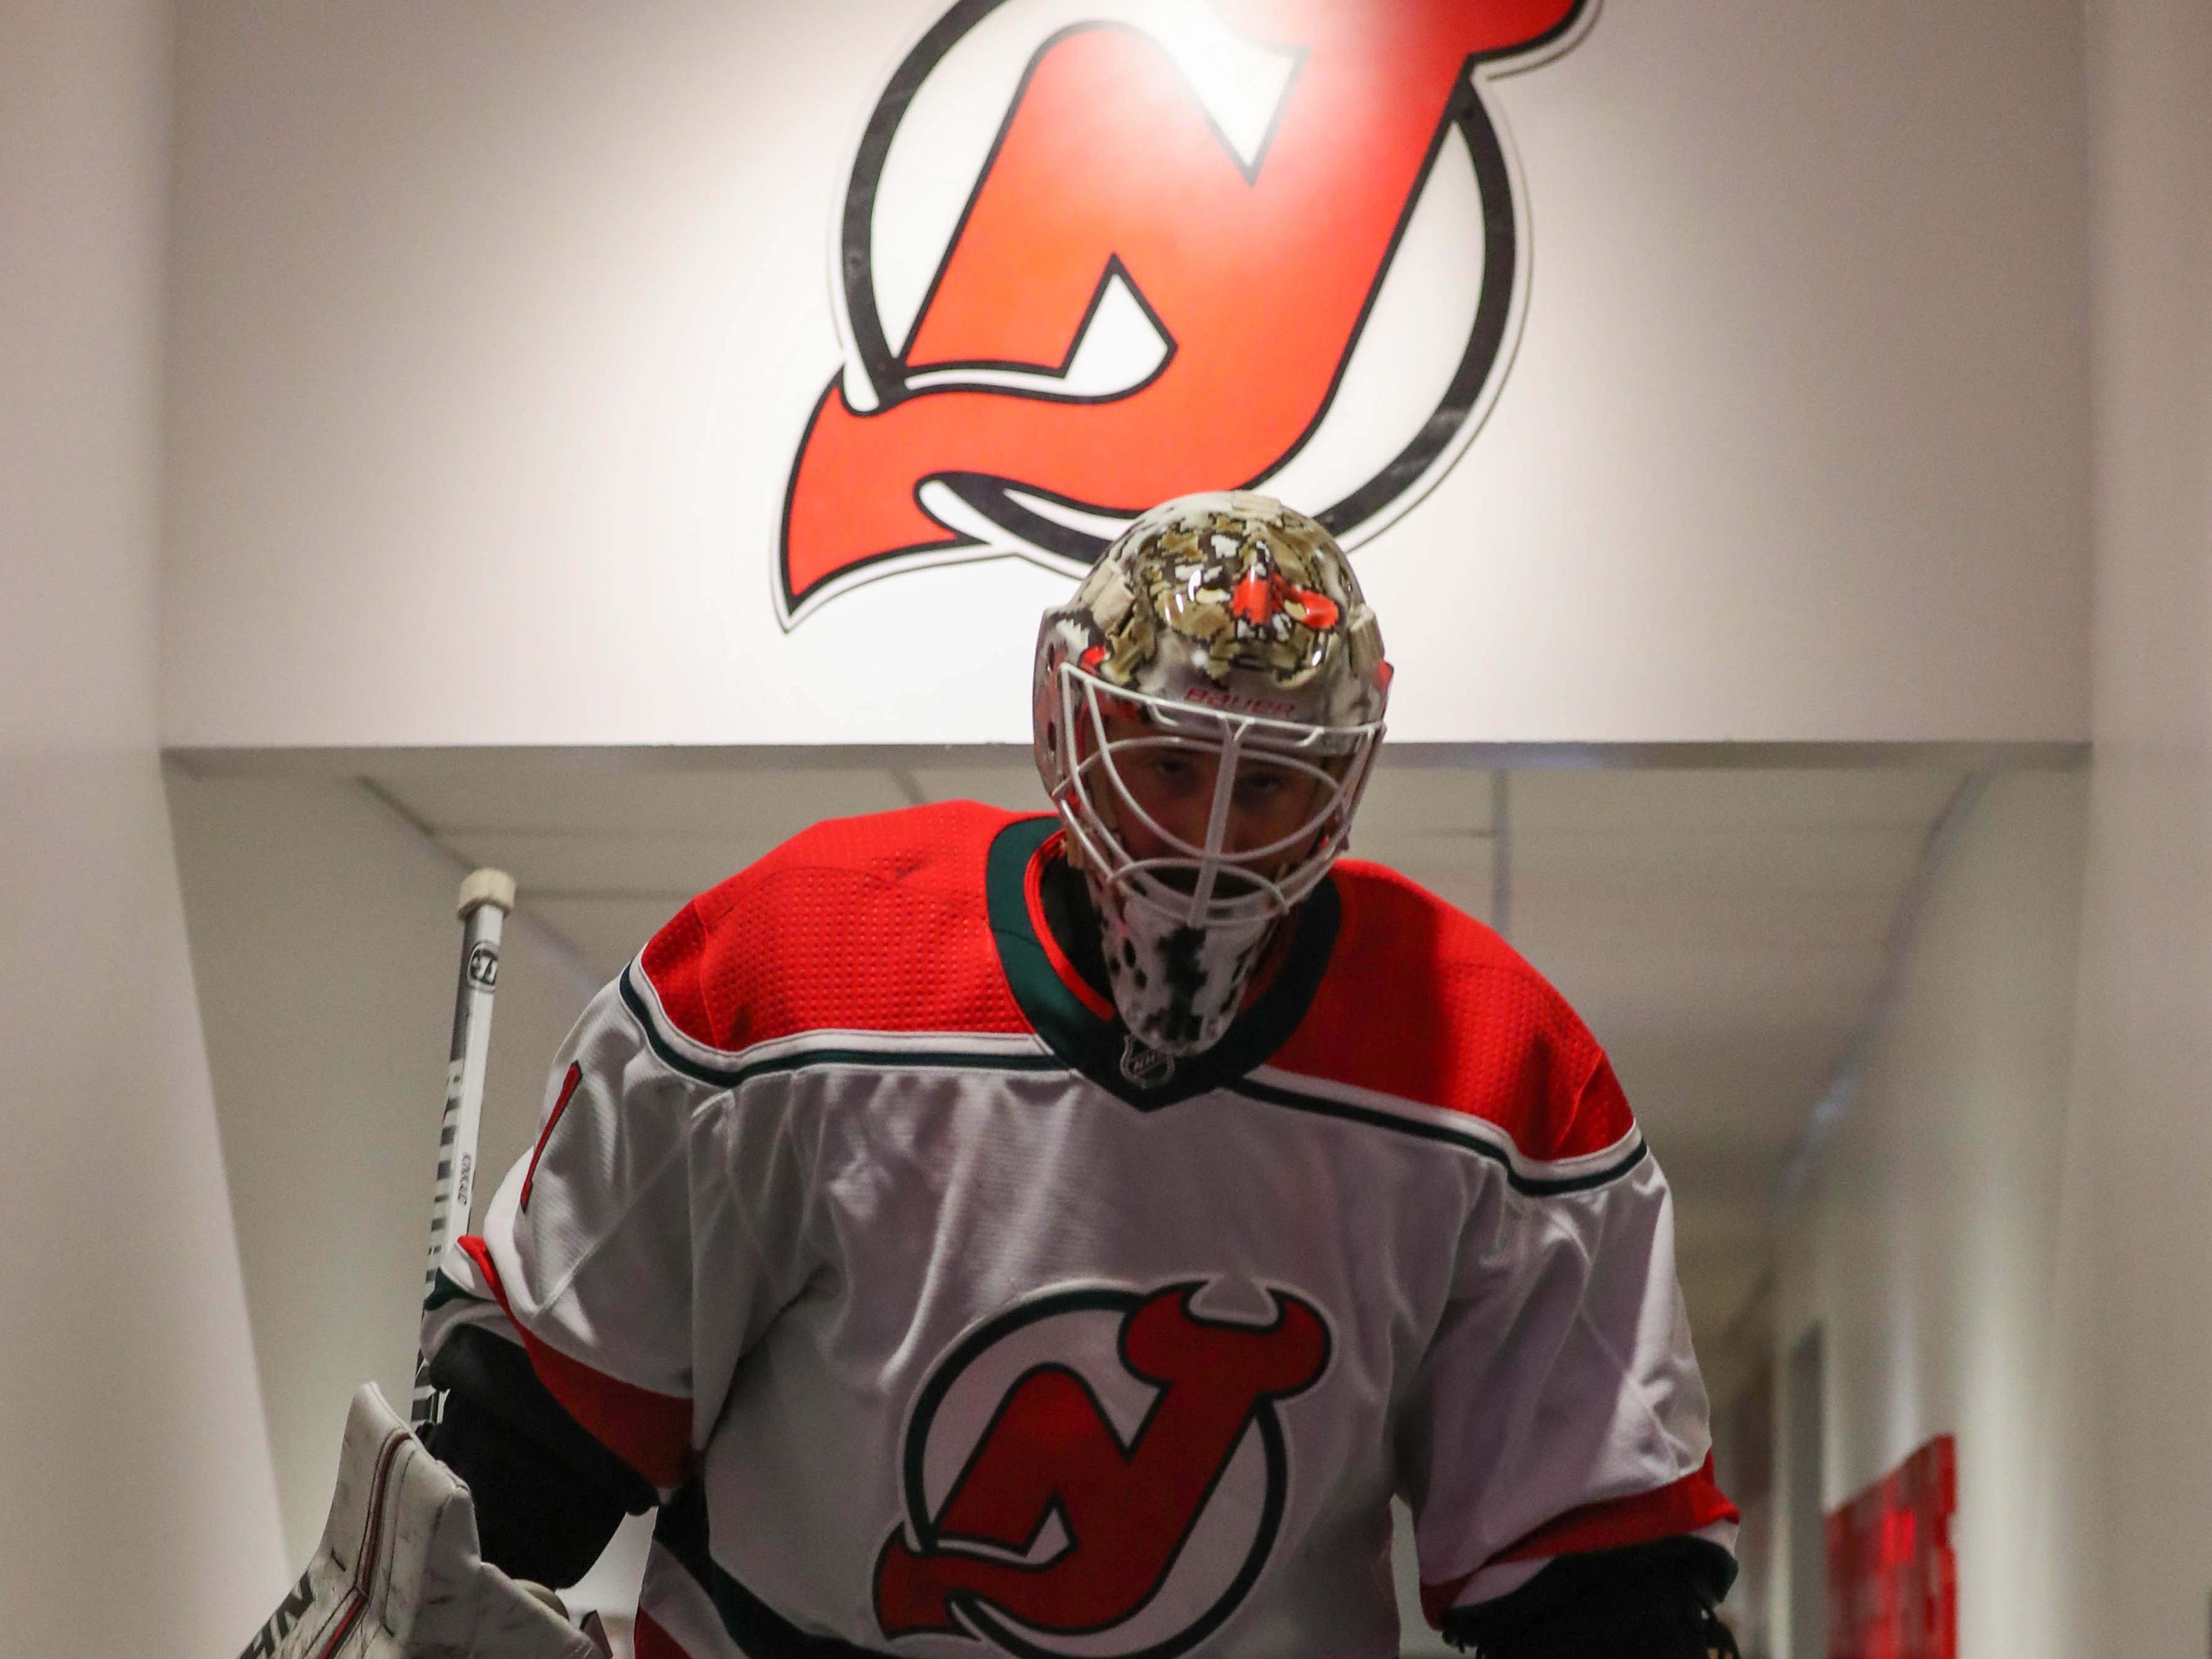 Jan 31, 2019; Newark, NJ, USA; New Jersey Devils goaltender Keith Kinkaid (1) leads the team out of the locker room before the start of their NHL game against the New York Rangers at Prudential Center